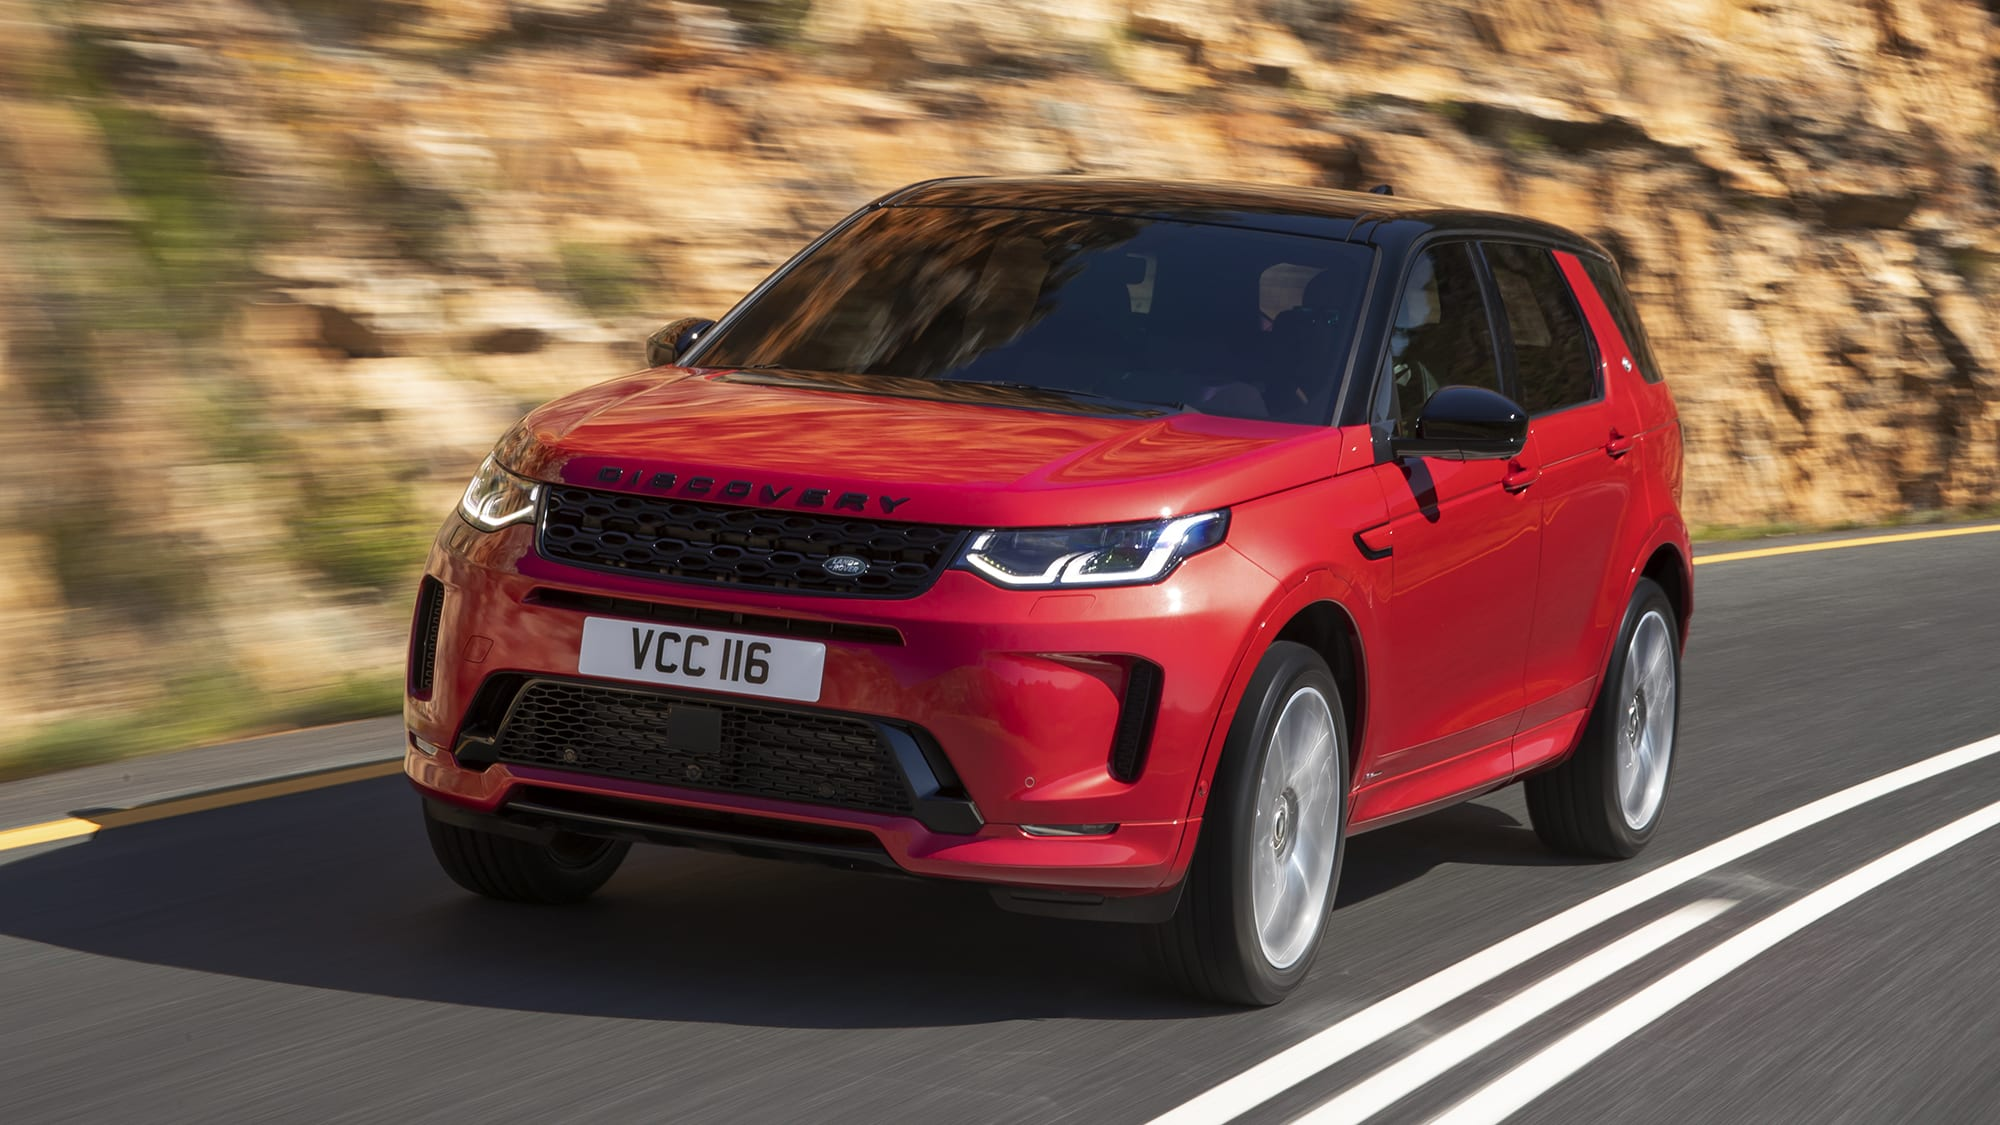 2020 Land Rover Discovery revealed, on sale now